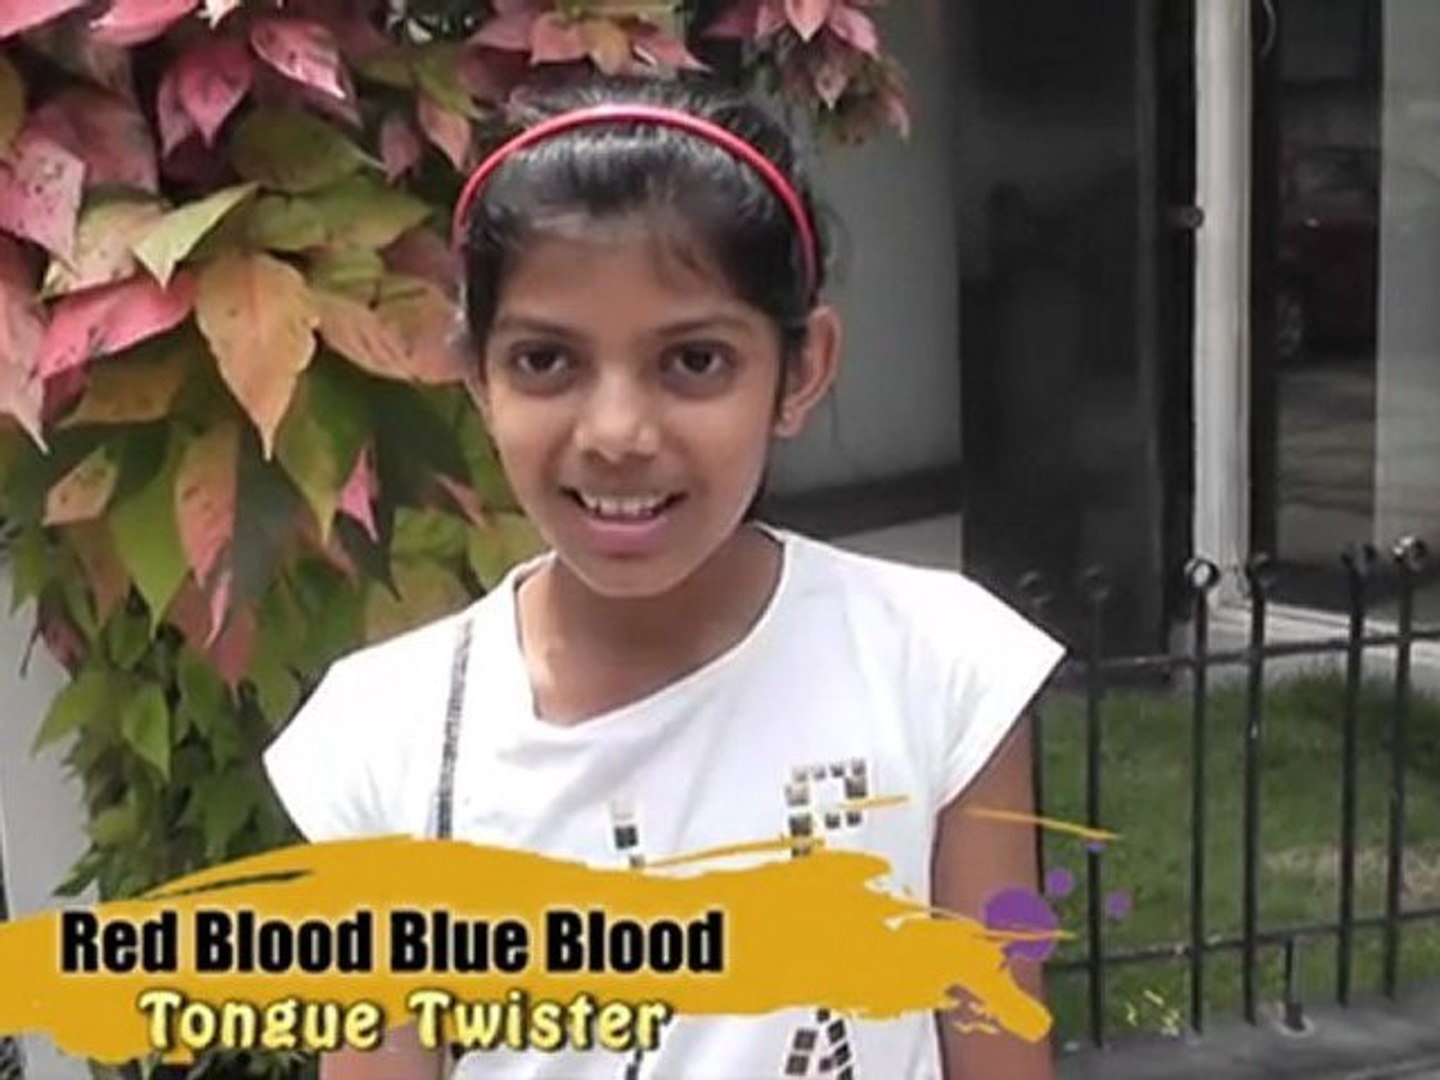 Tongue Twister  - Red Blood Blue Blood